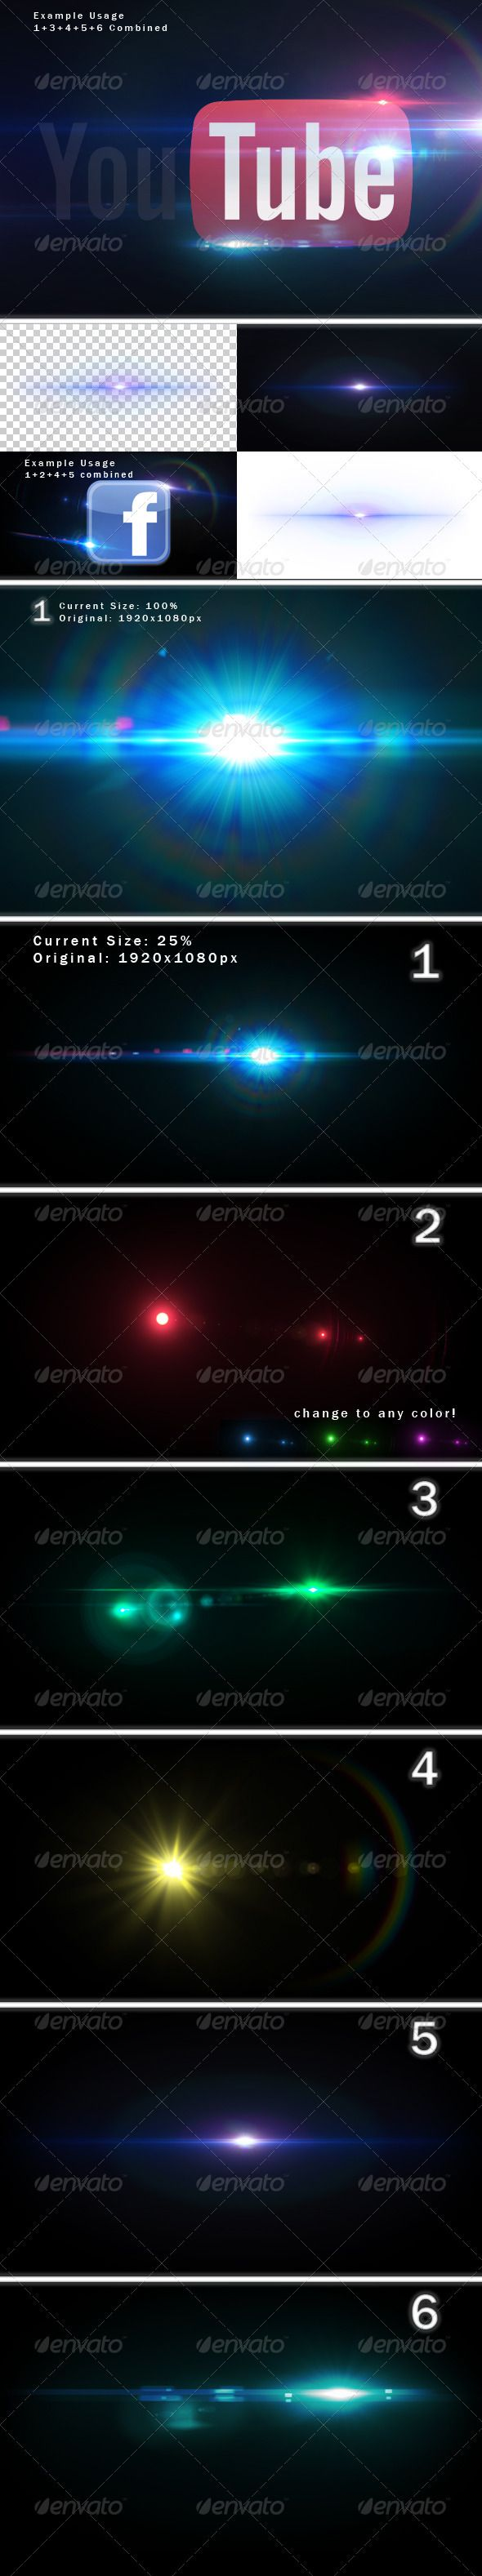 6 Unique Lens Flares - Light Effects -3-  #GraphicRiver         6 Unique Lens Flares – Light Effects (Part 3) Give your Logos, Photos etc a touch of professionality with these lens flares.   Combine the flares! 100% Transparent! Premade Flares! Change into any color you like! Very Simple! Resize, rotate, color, combine and fit your likes!   Files included:  lensflares.psd  readme.txt  premade(folder):  1.png  2.png  3.png  4.png  5.png  6.png    Also Check out:            Created…